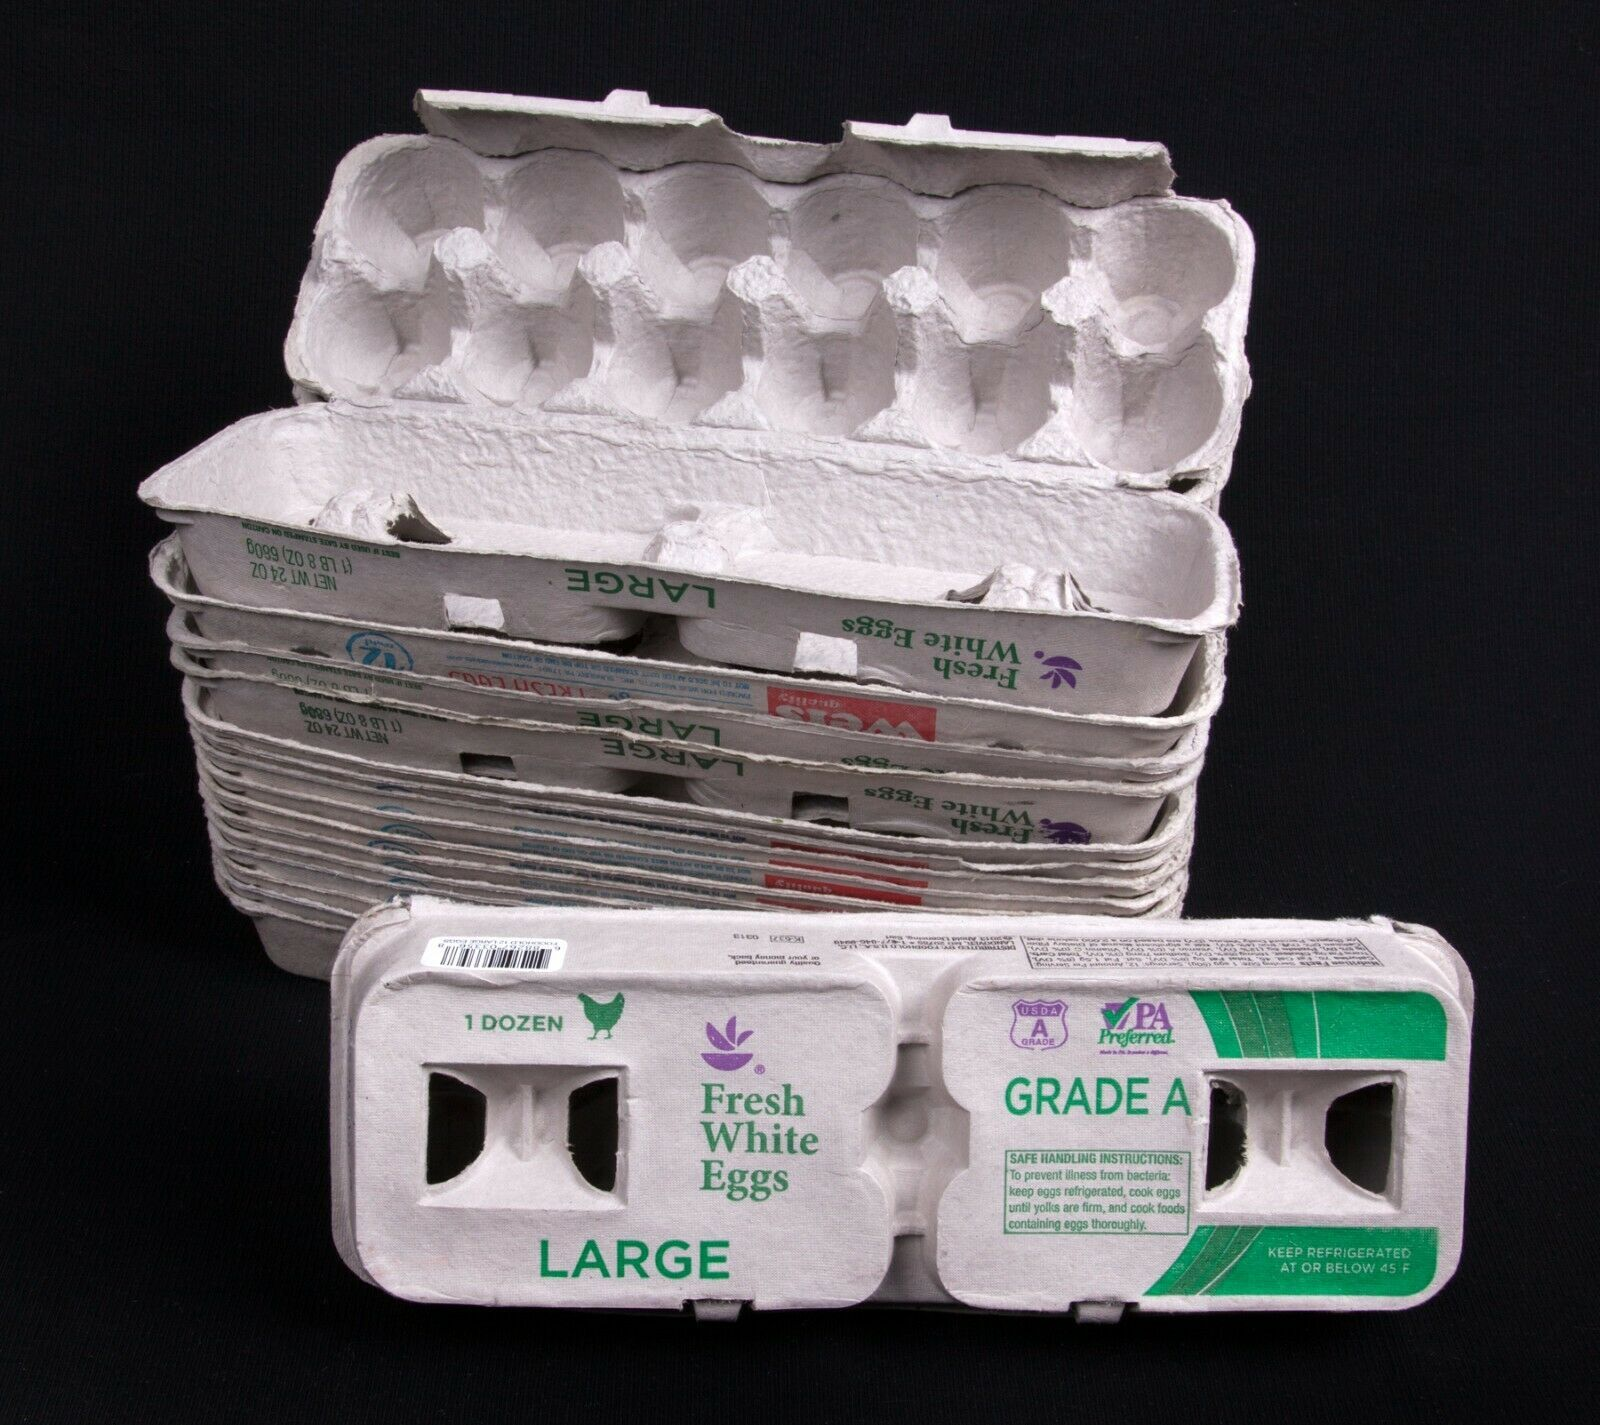 Details About Buy 15 Get 2 Free Empty Egg Cartons Dozen Cardboard Crafts Seed Starting Plants In 2020 Egg Carton Cardboard Crafts Crafts